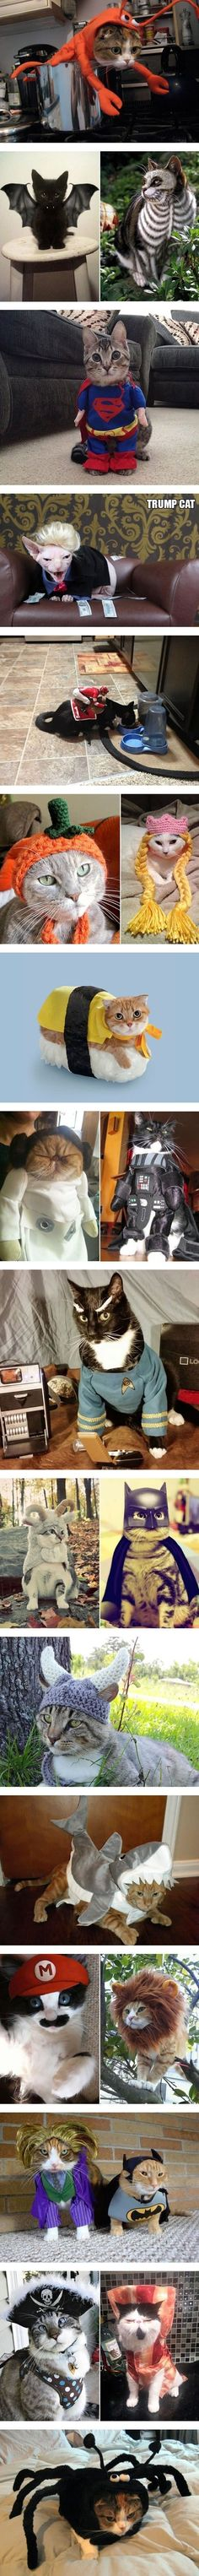 Halloween cat costumes - Tap the link now to see all of our cool cat collections! #Coolcatmakeupideas #coolhalloweencostumes